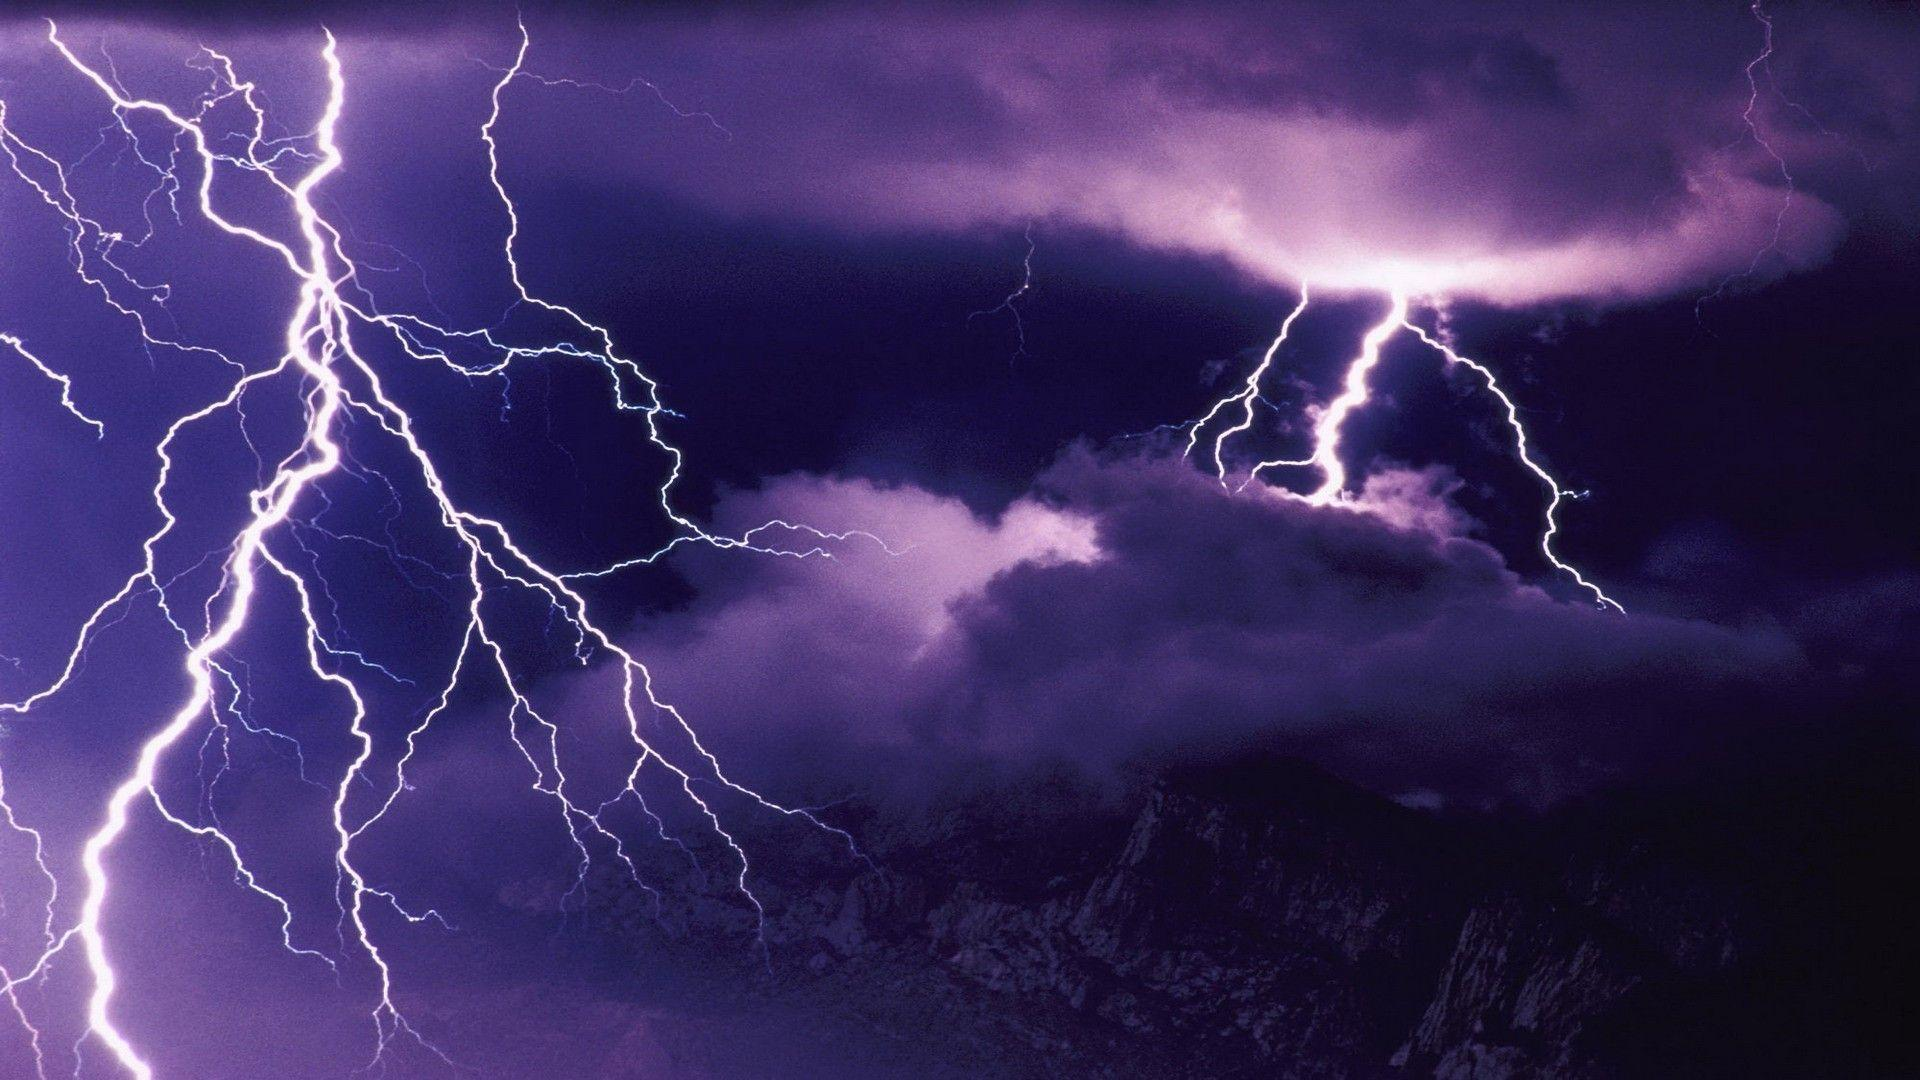 Wallpapers For > Lightning Storm Wallpaper Hd